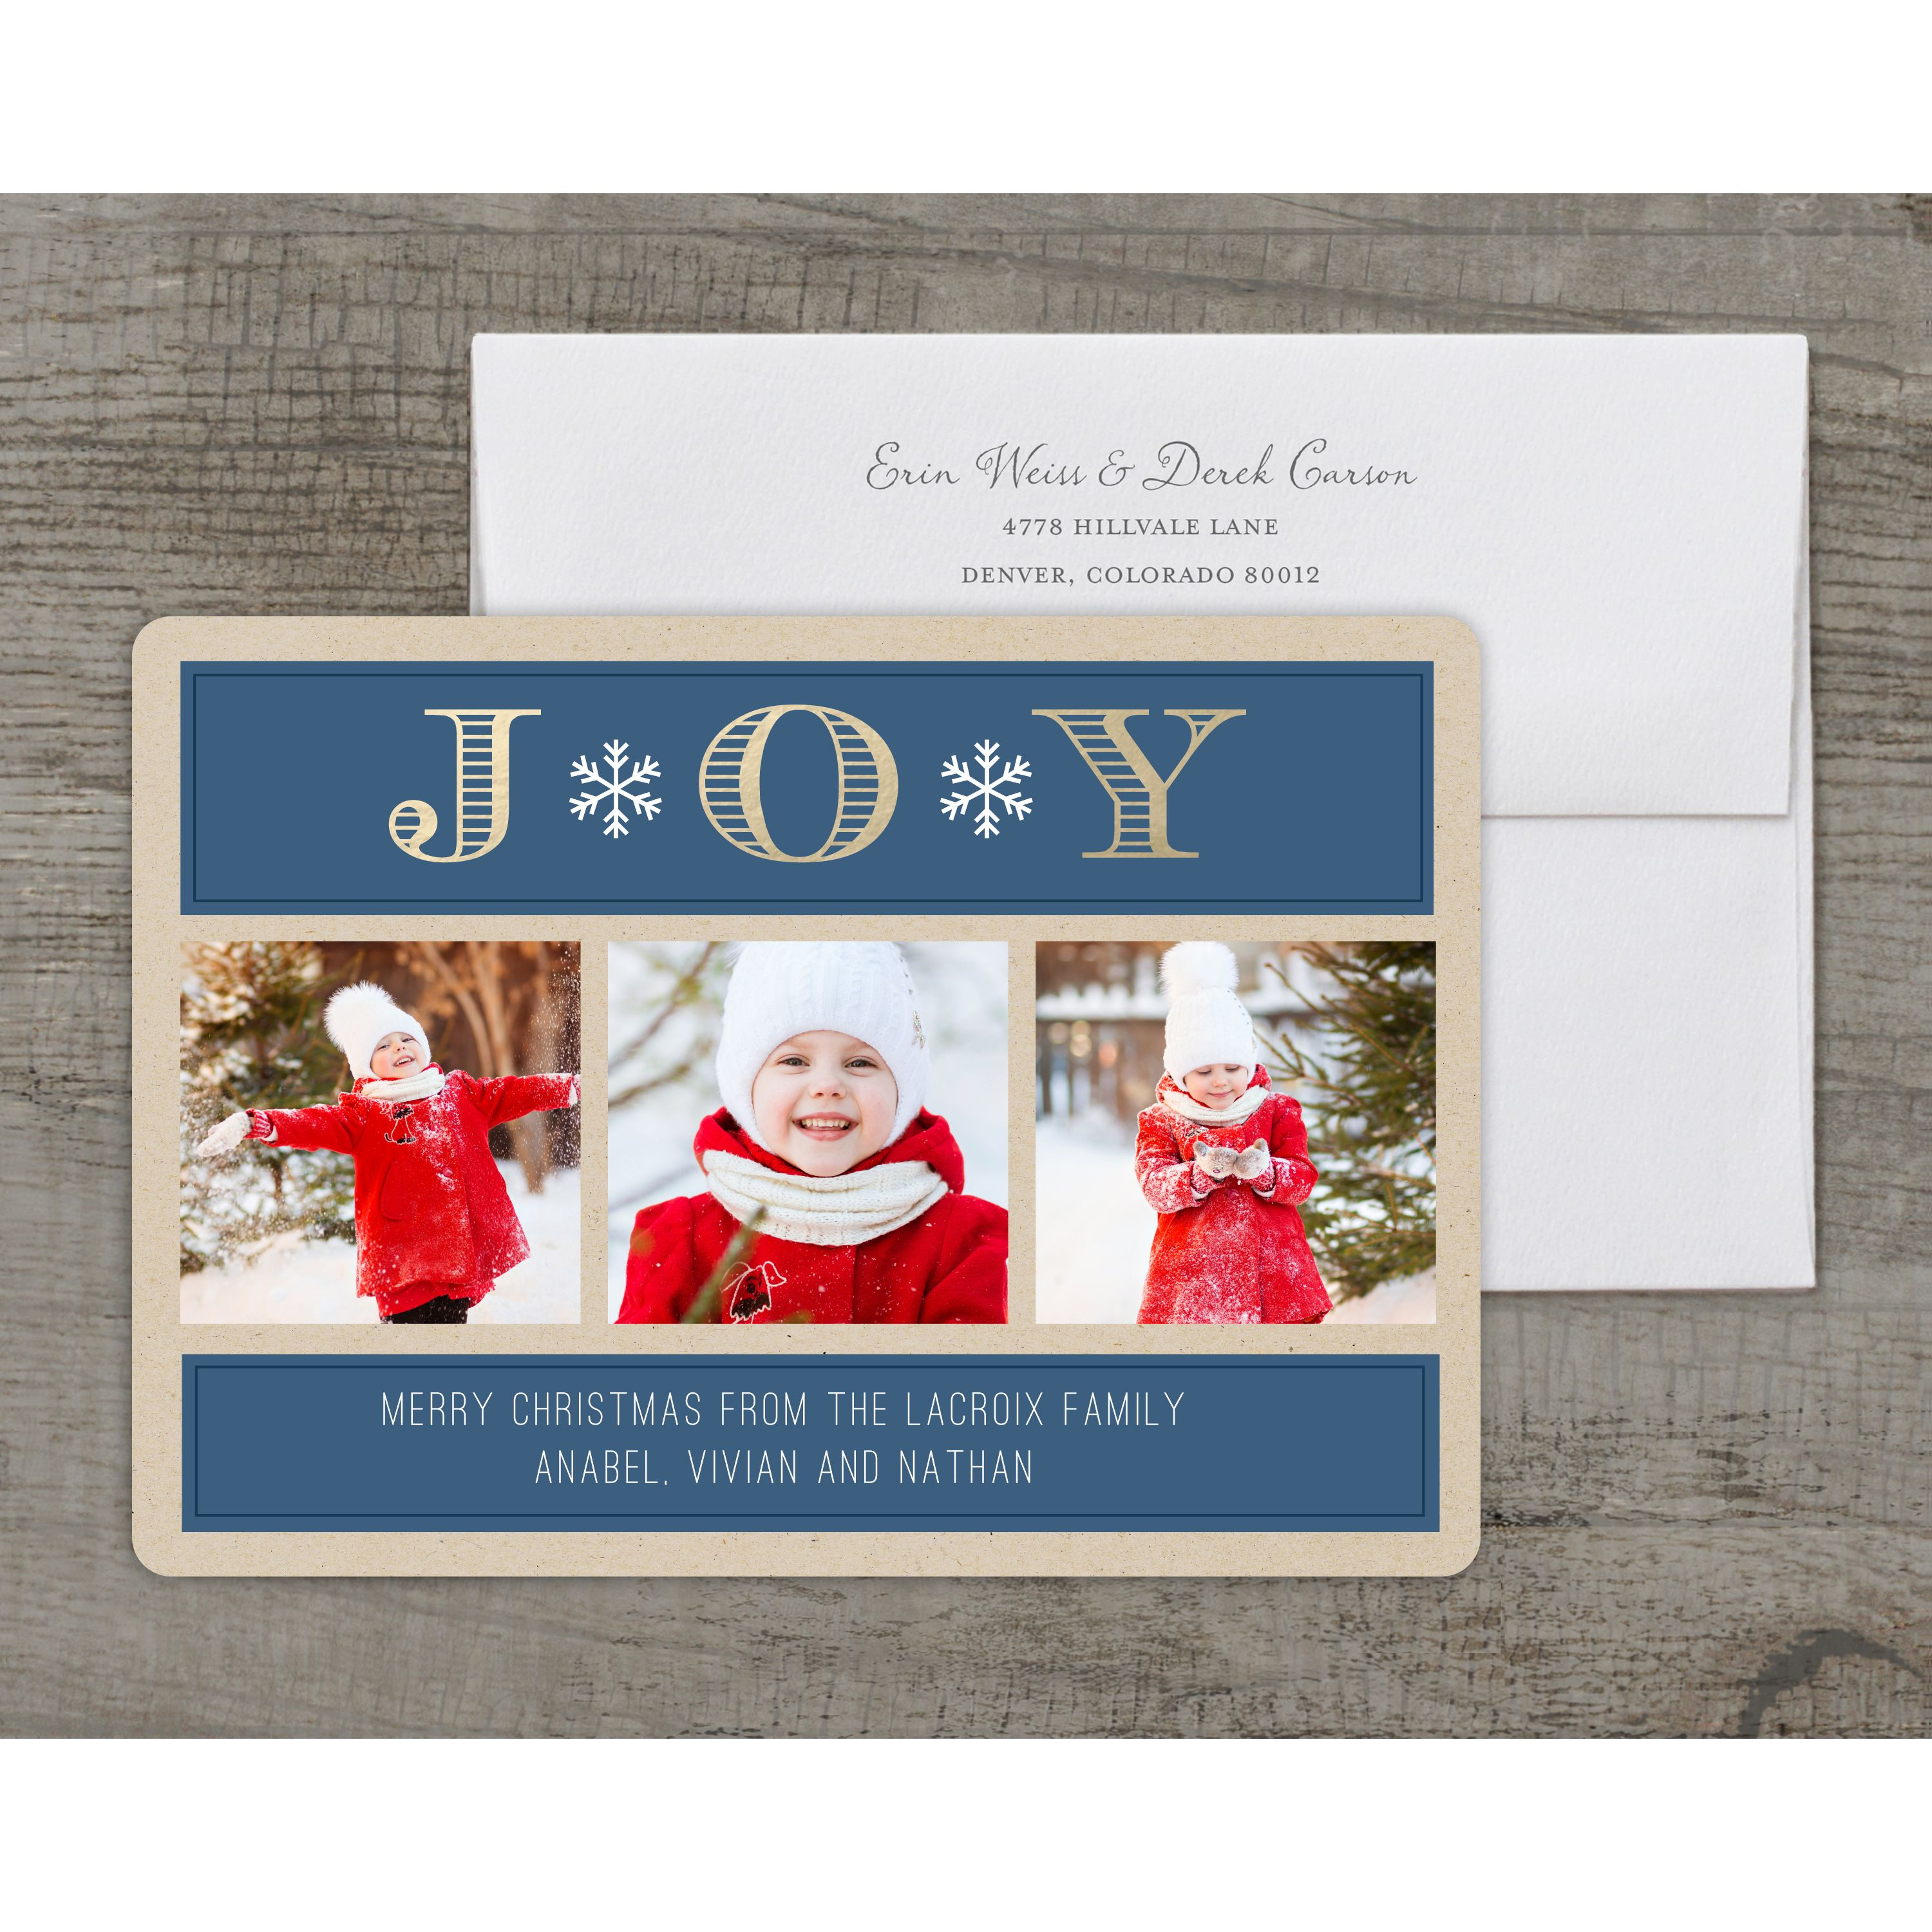 Deluxe 5x7 Personalized Holiday Christmas